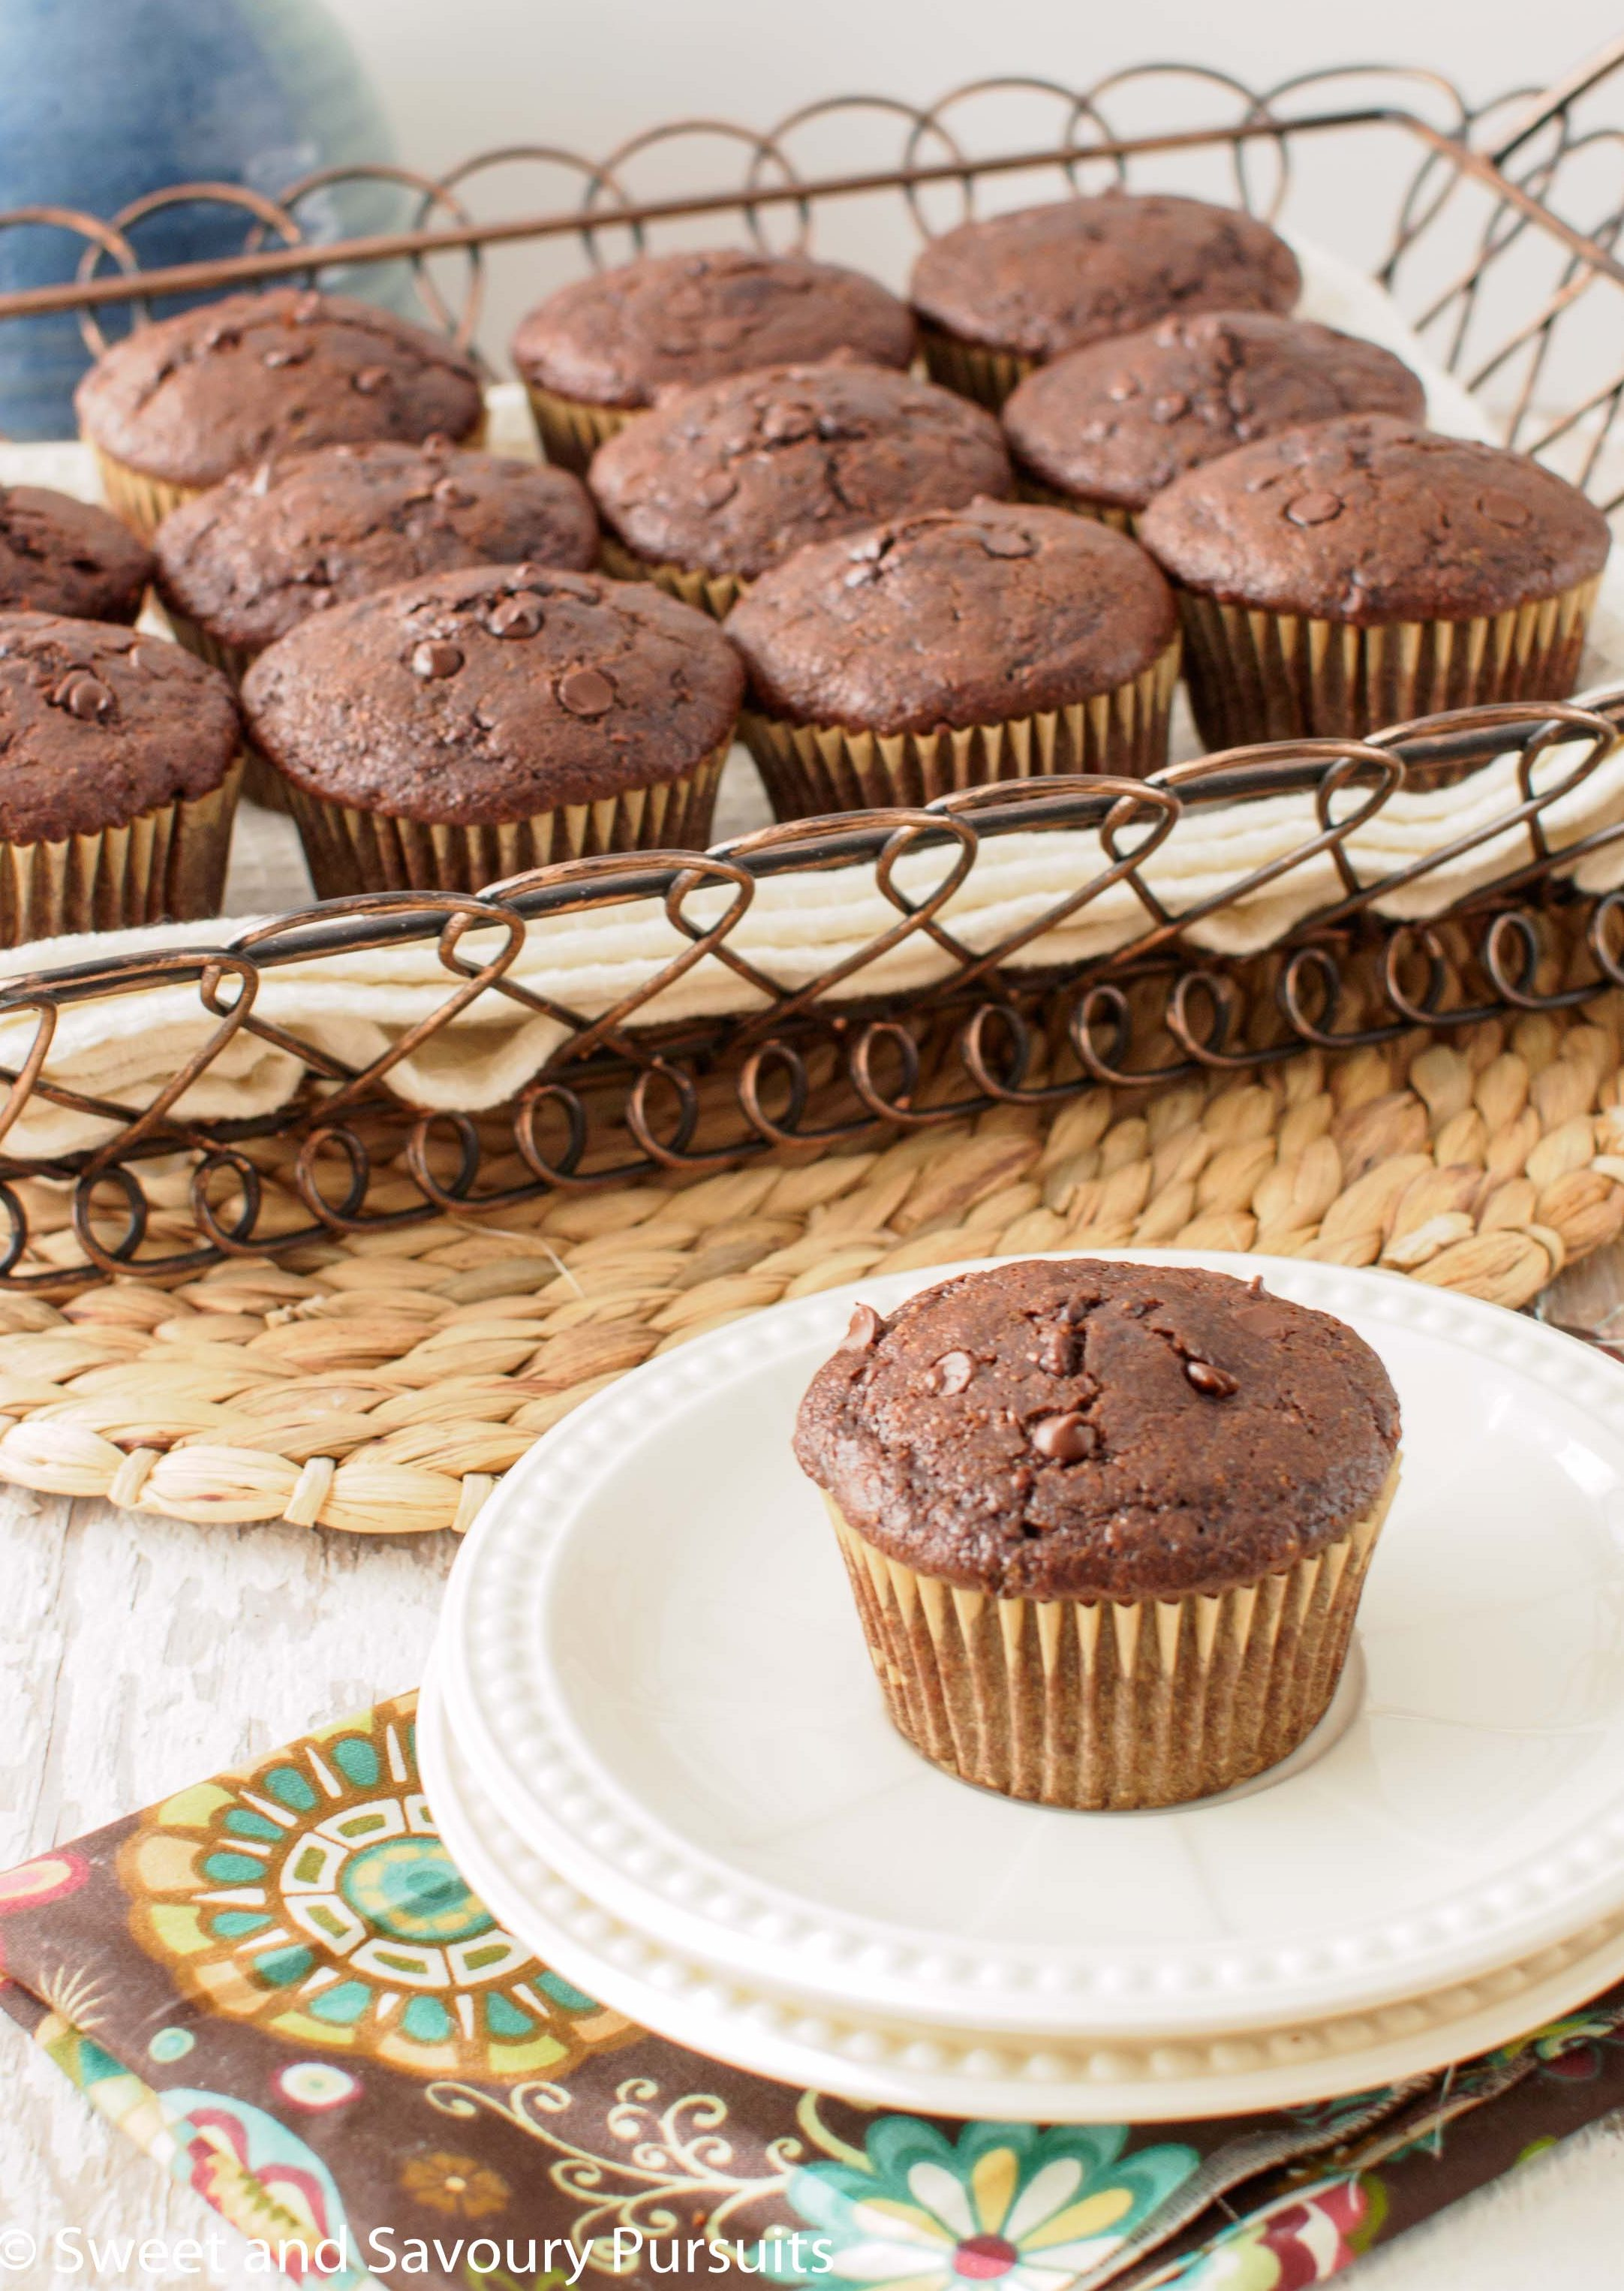 Moist, tender and chocolatey, these Whole Wheat Double Chocolate Zucchini Chai Muffins are a delicious way to start your day.